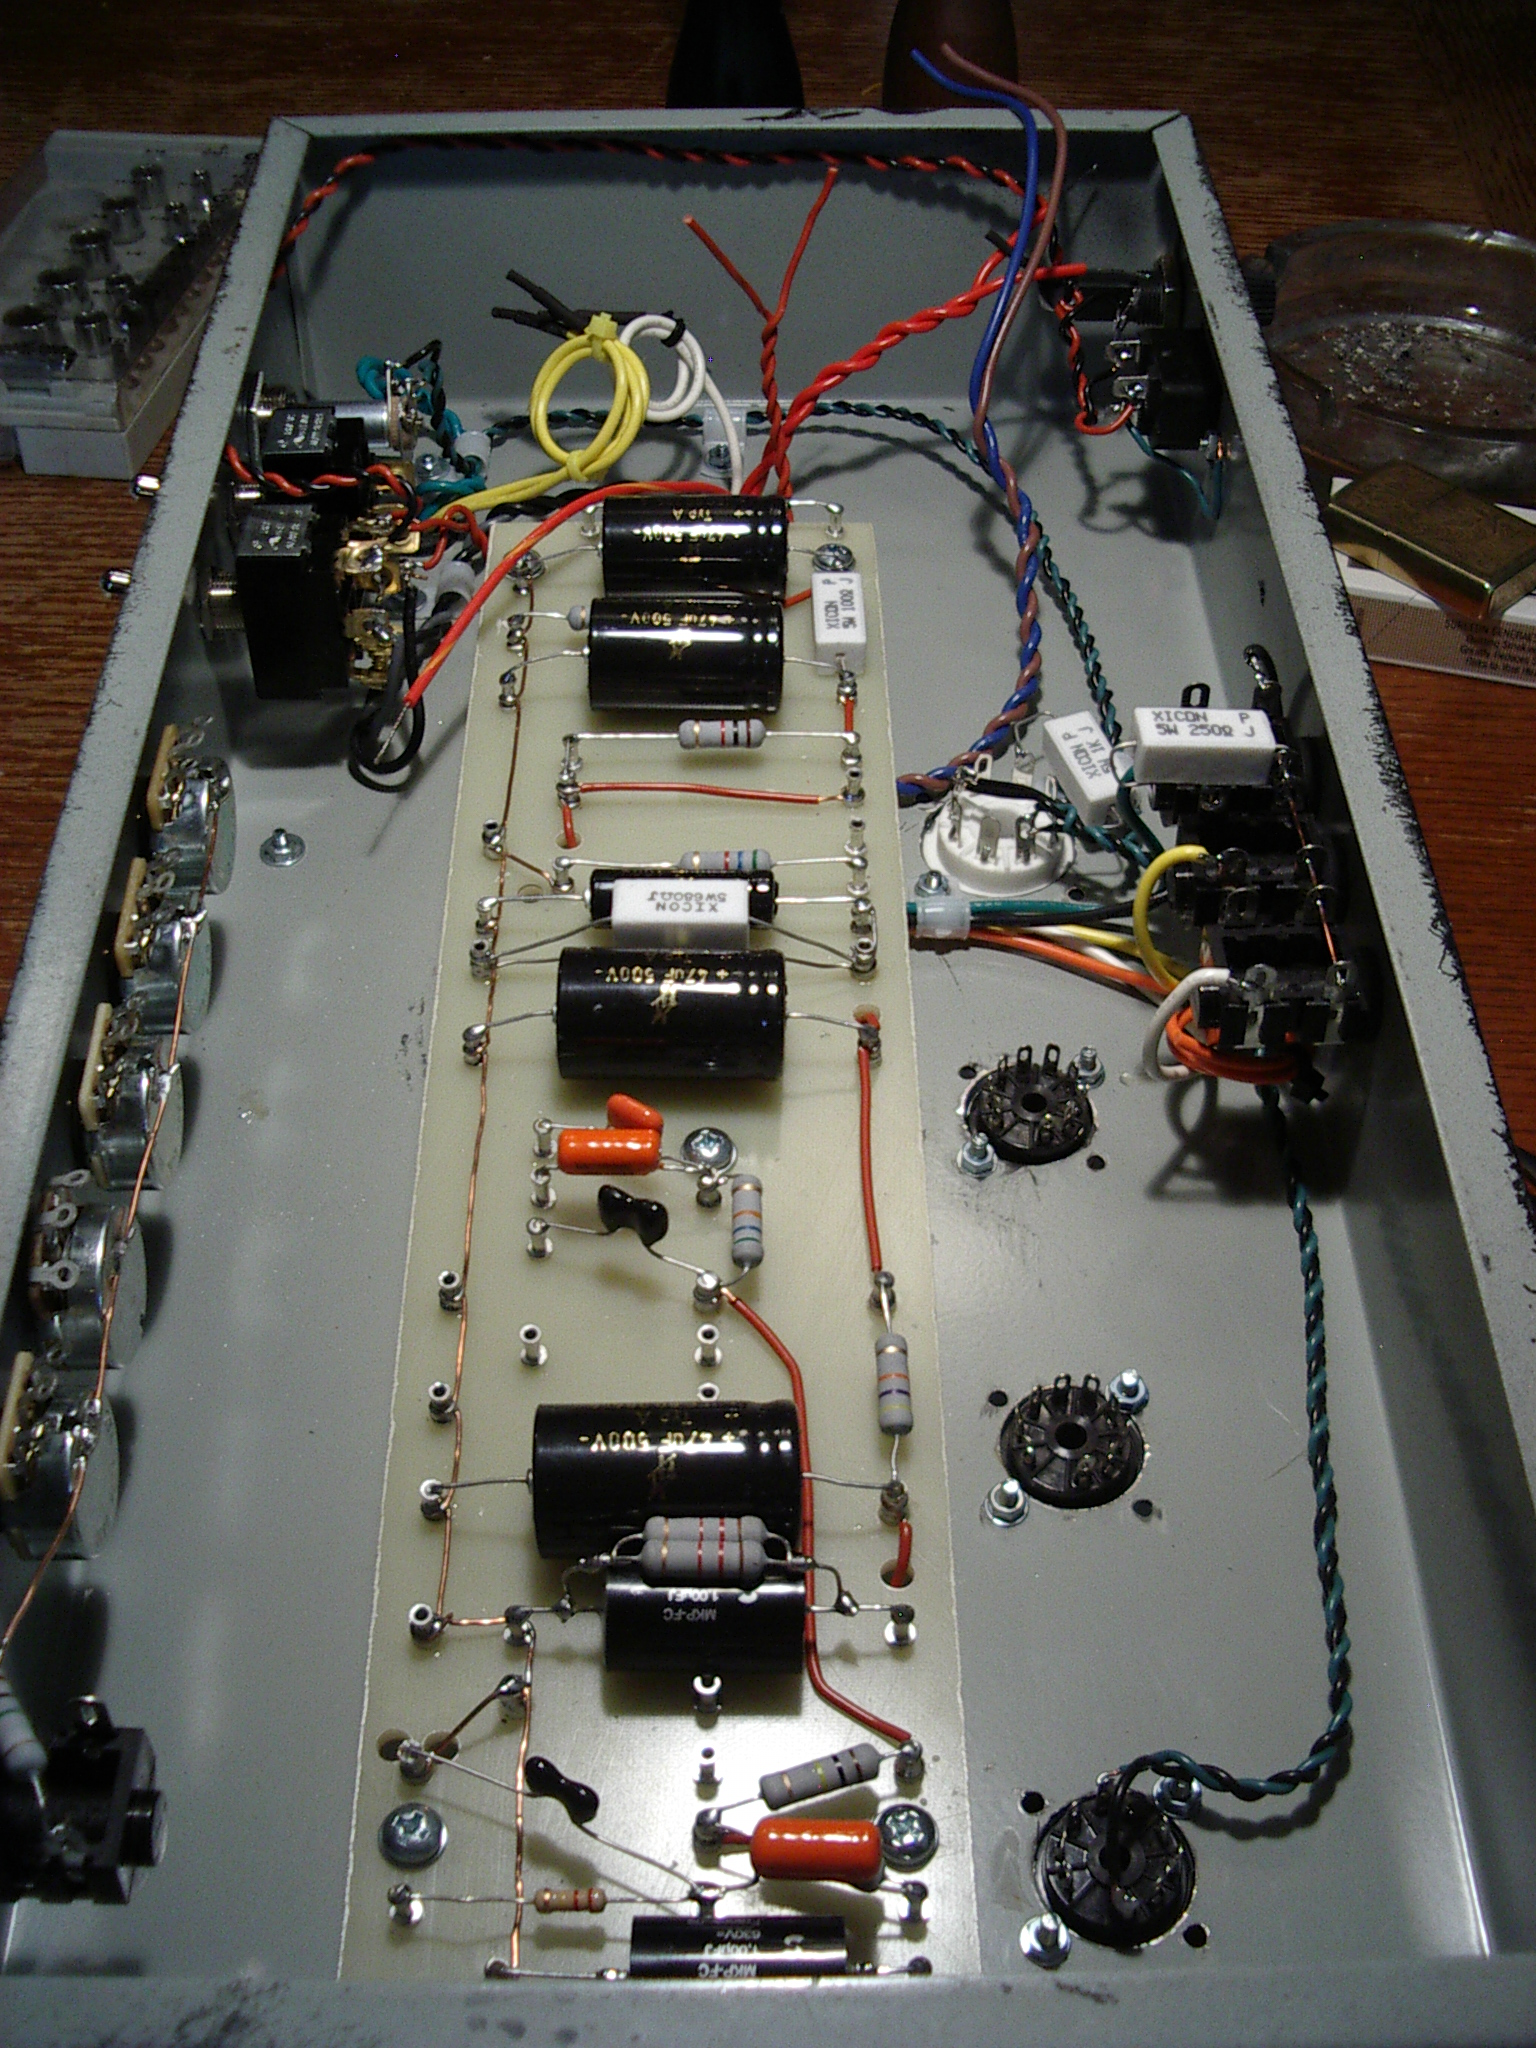 Simon Allaway Hot Bottles Page 2 Wiring Diagrams Besides Emg 89 Pickups Diagram On Board Installed In Chassis Transformer Wires Trimmed Heaters Wired Switches